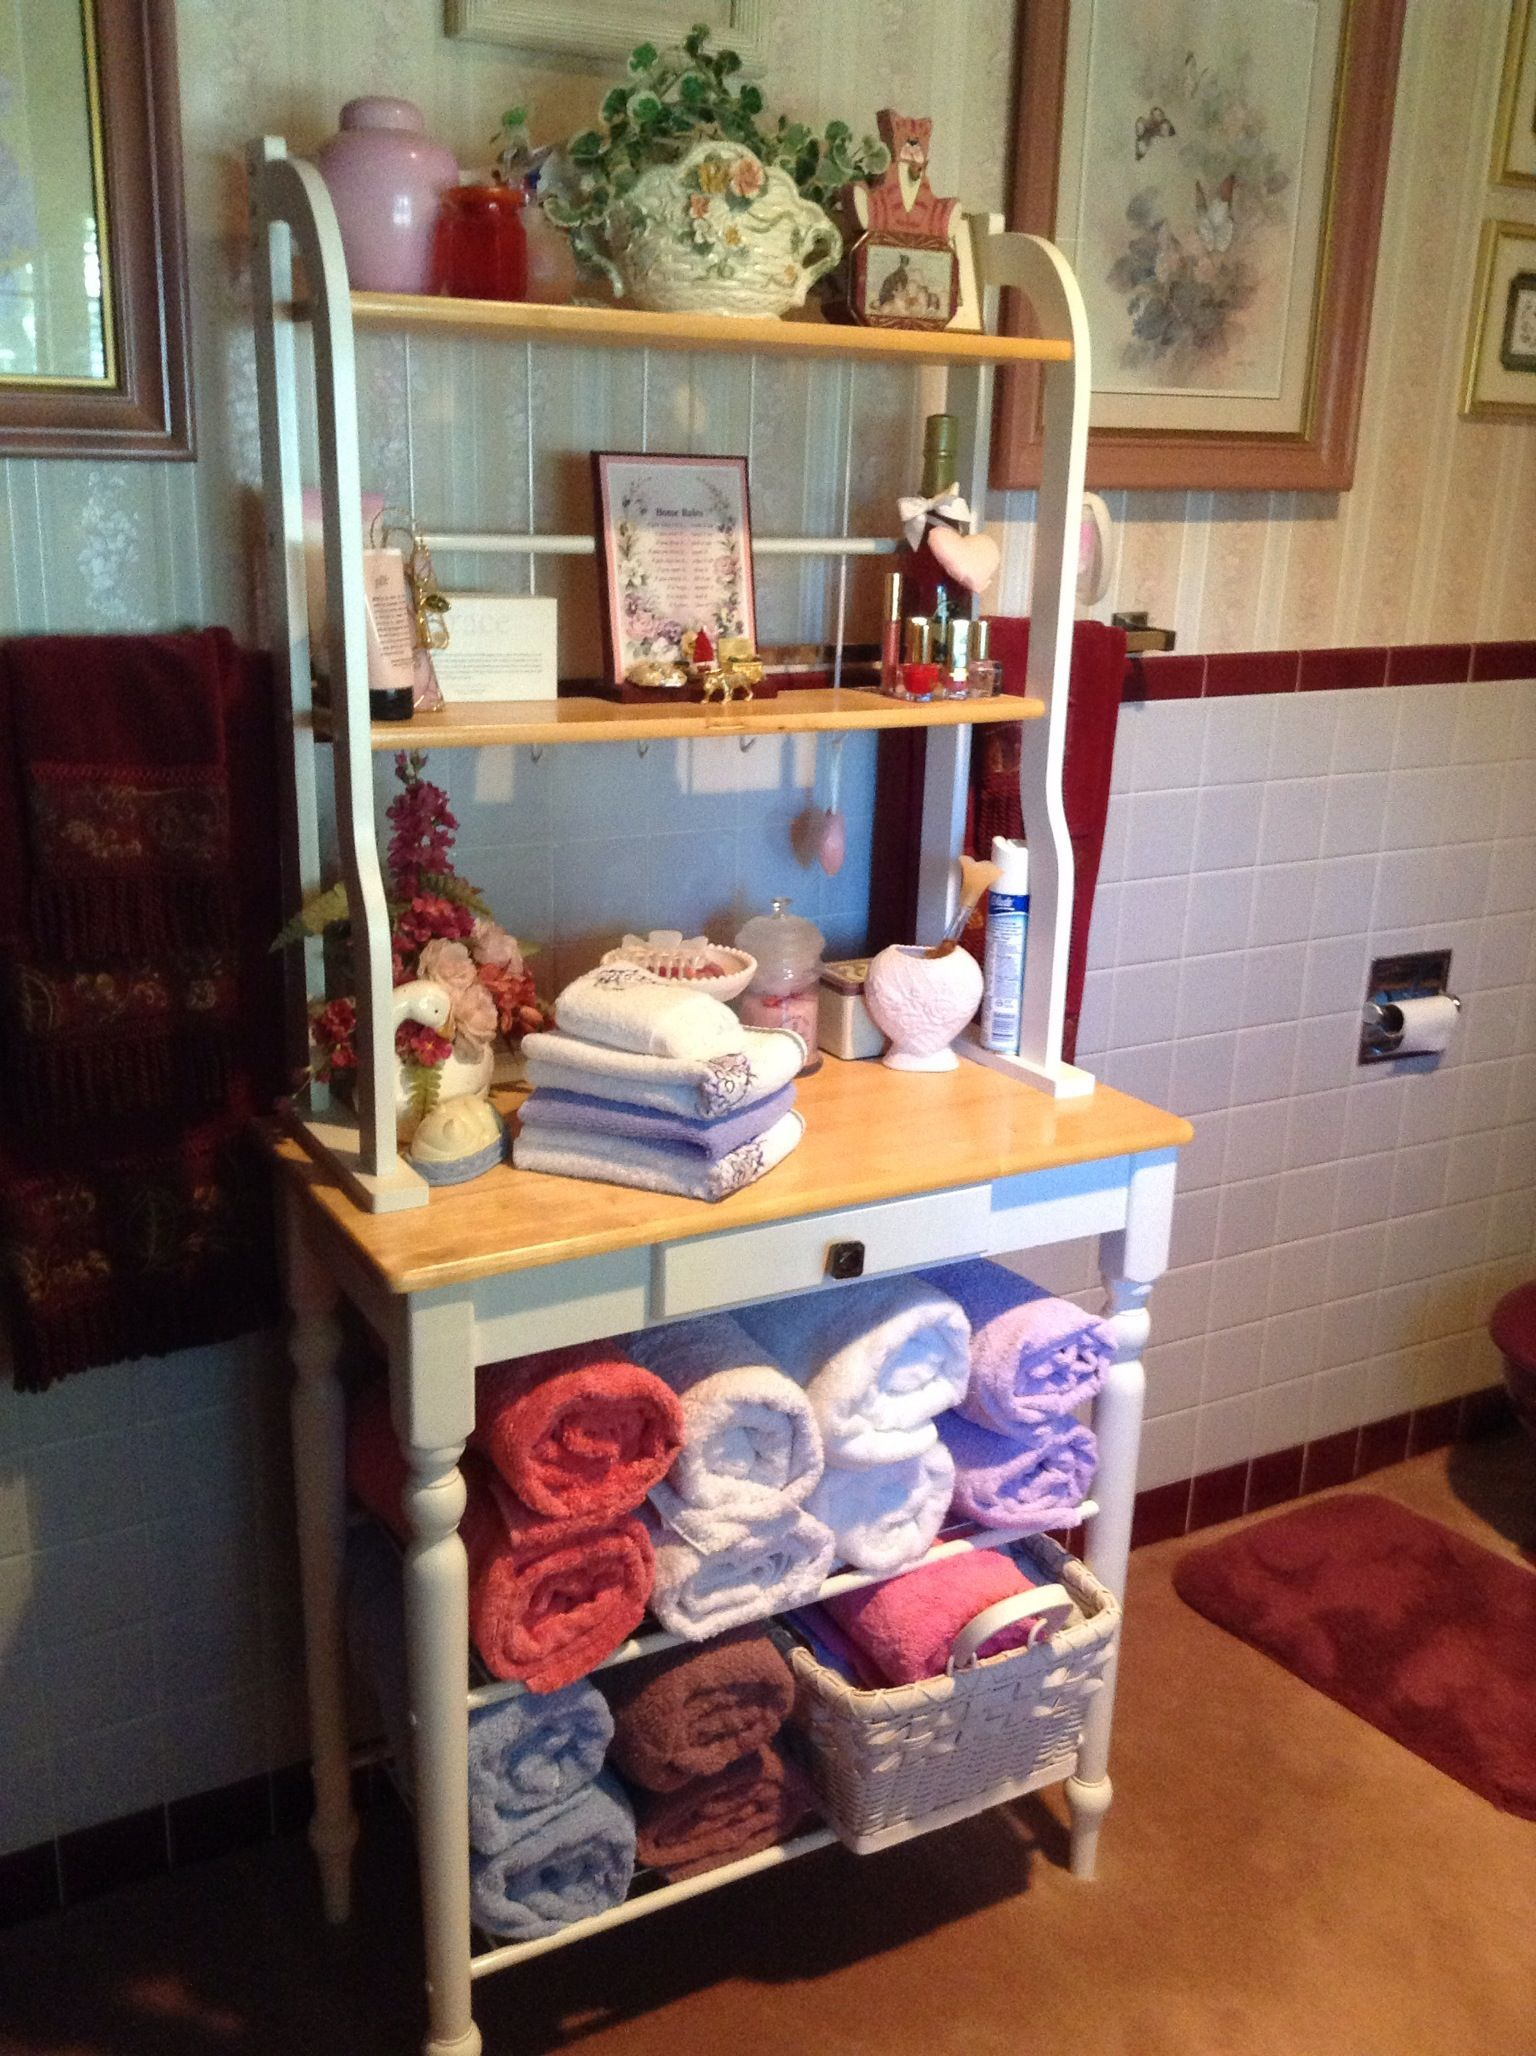 Baker S Rack Used For Towels And Etc In The Bathroom With